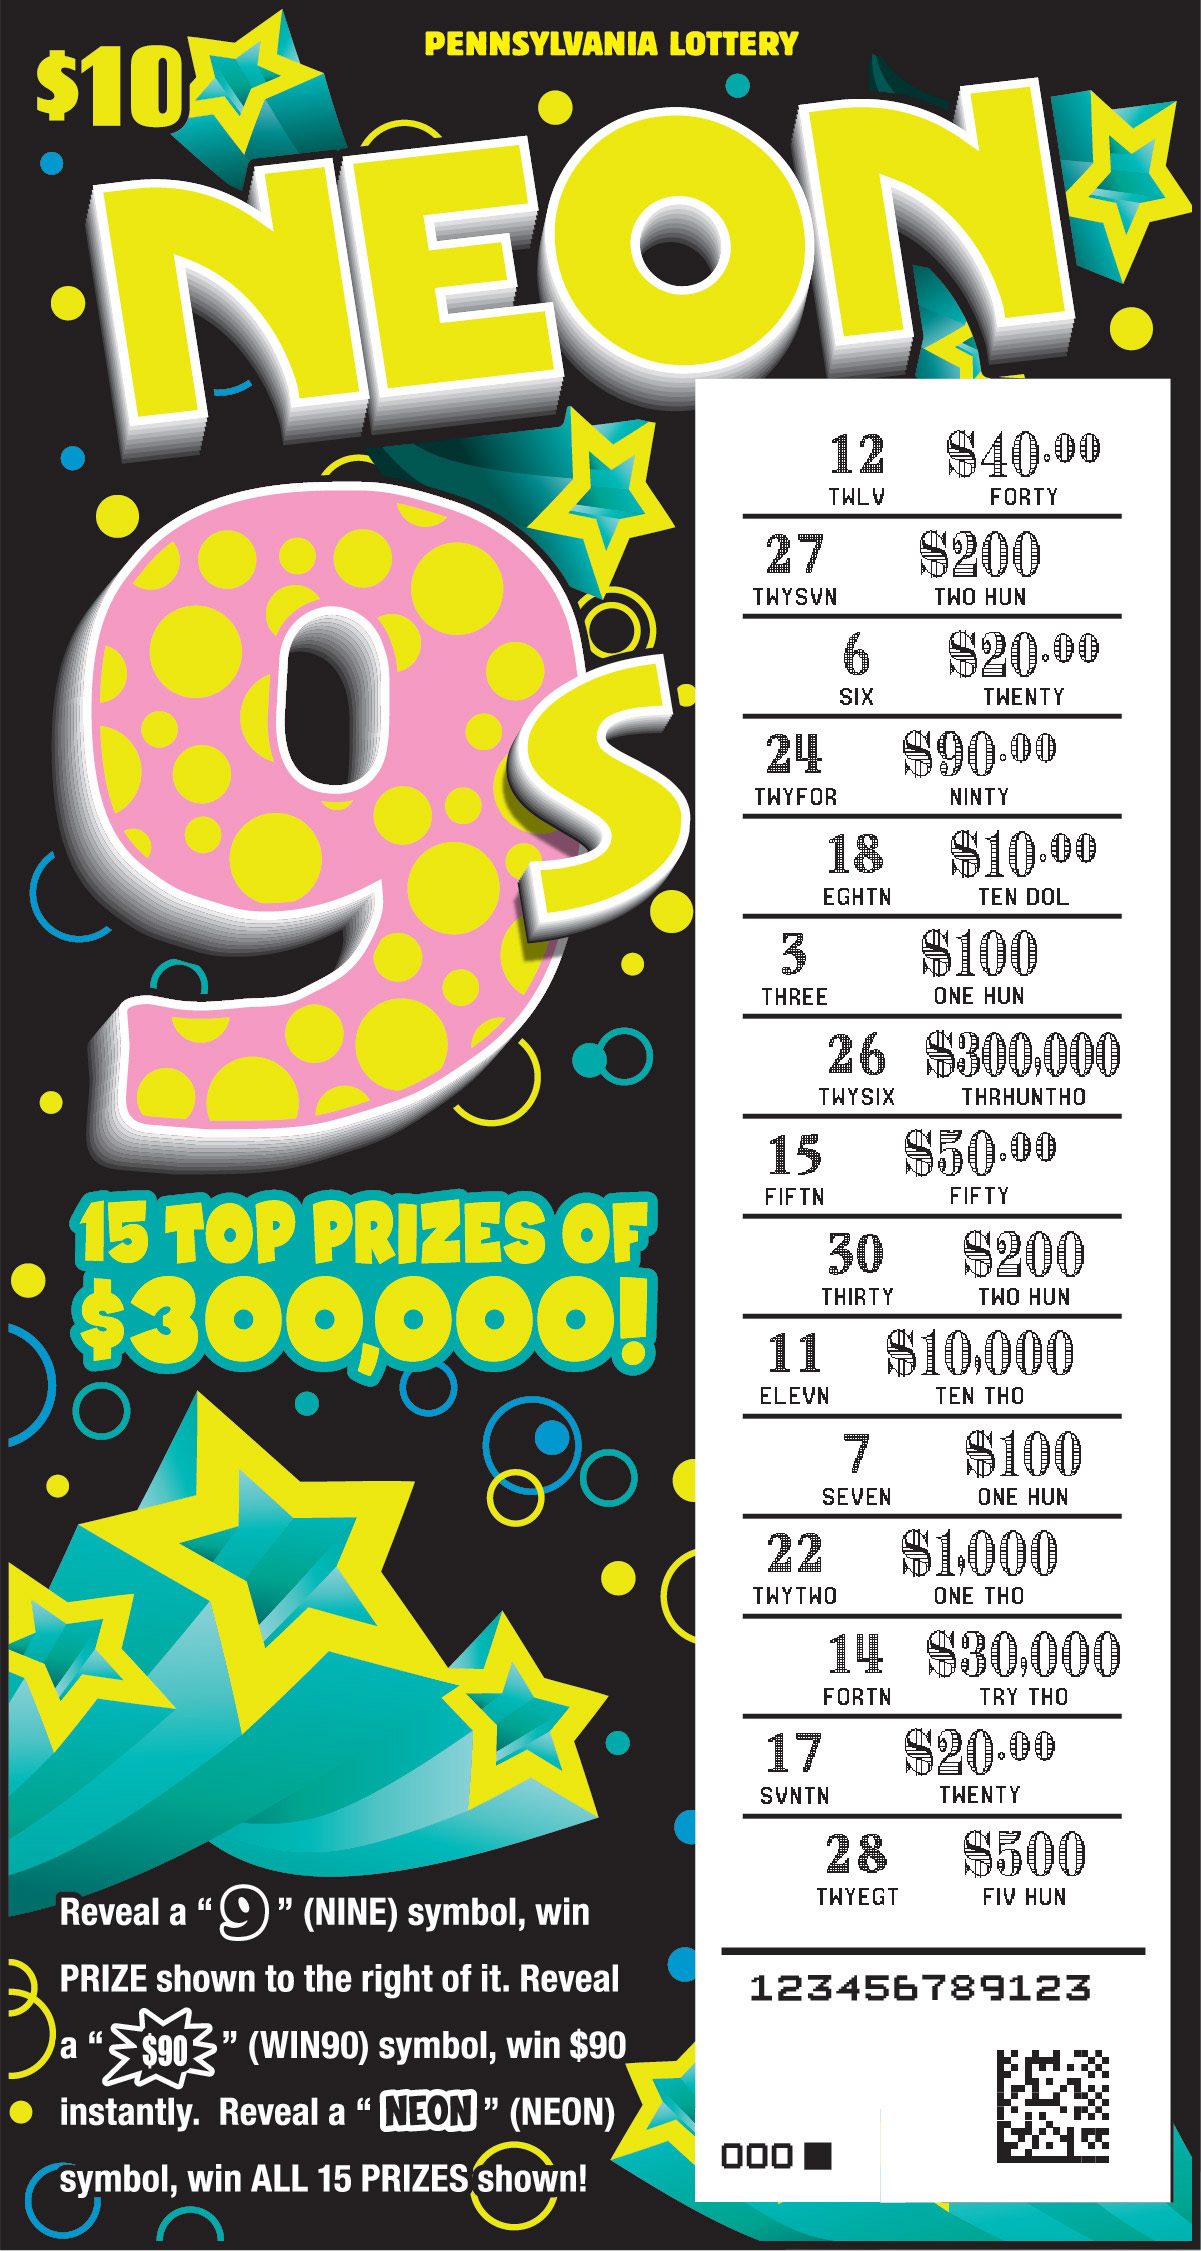 pennsylvania lottery game with best odds